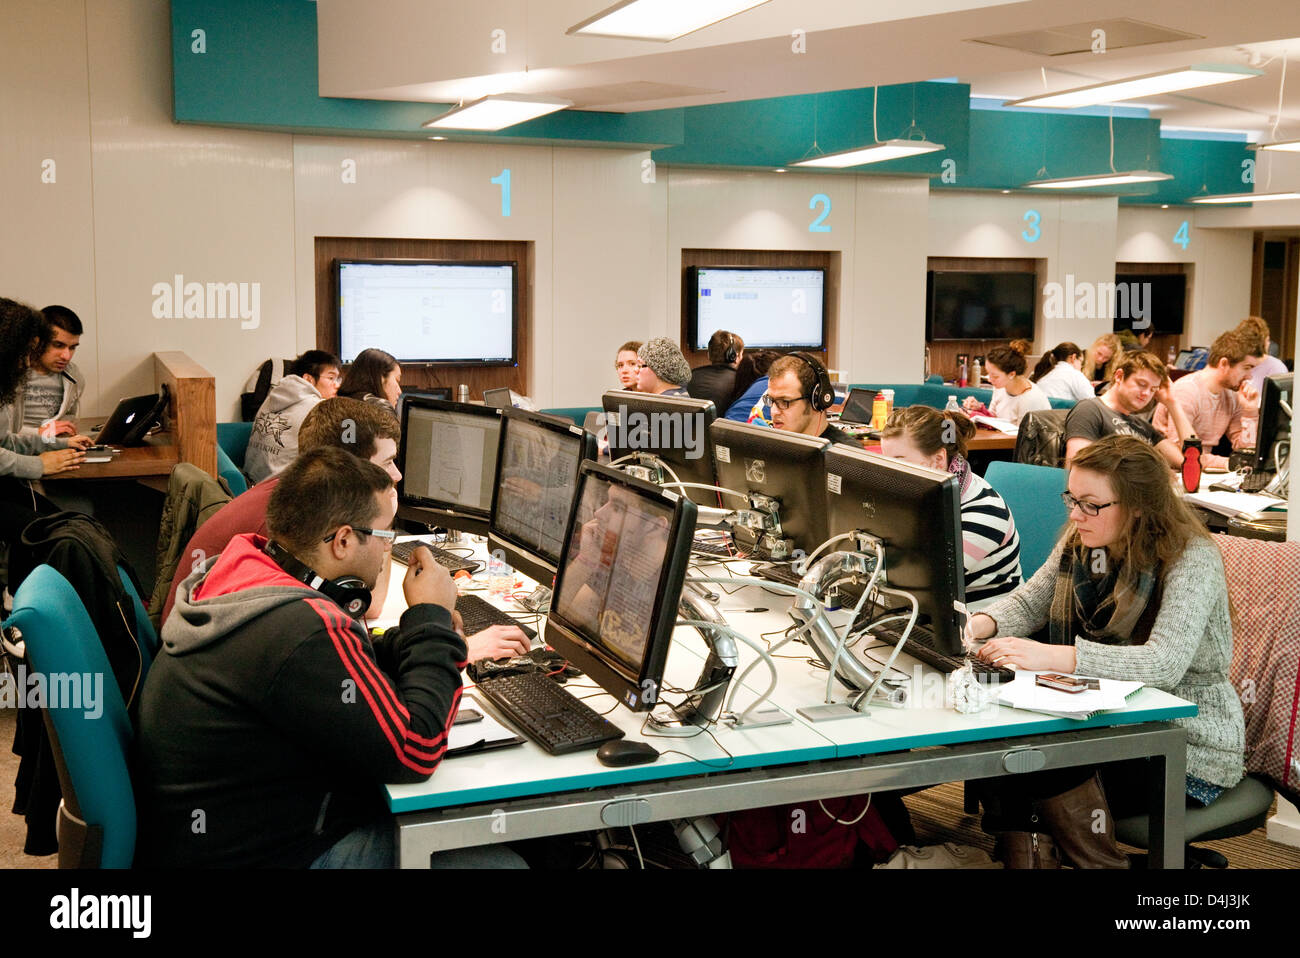 University students studying at their computers, Birmingham university, UK - Stock Image